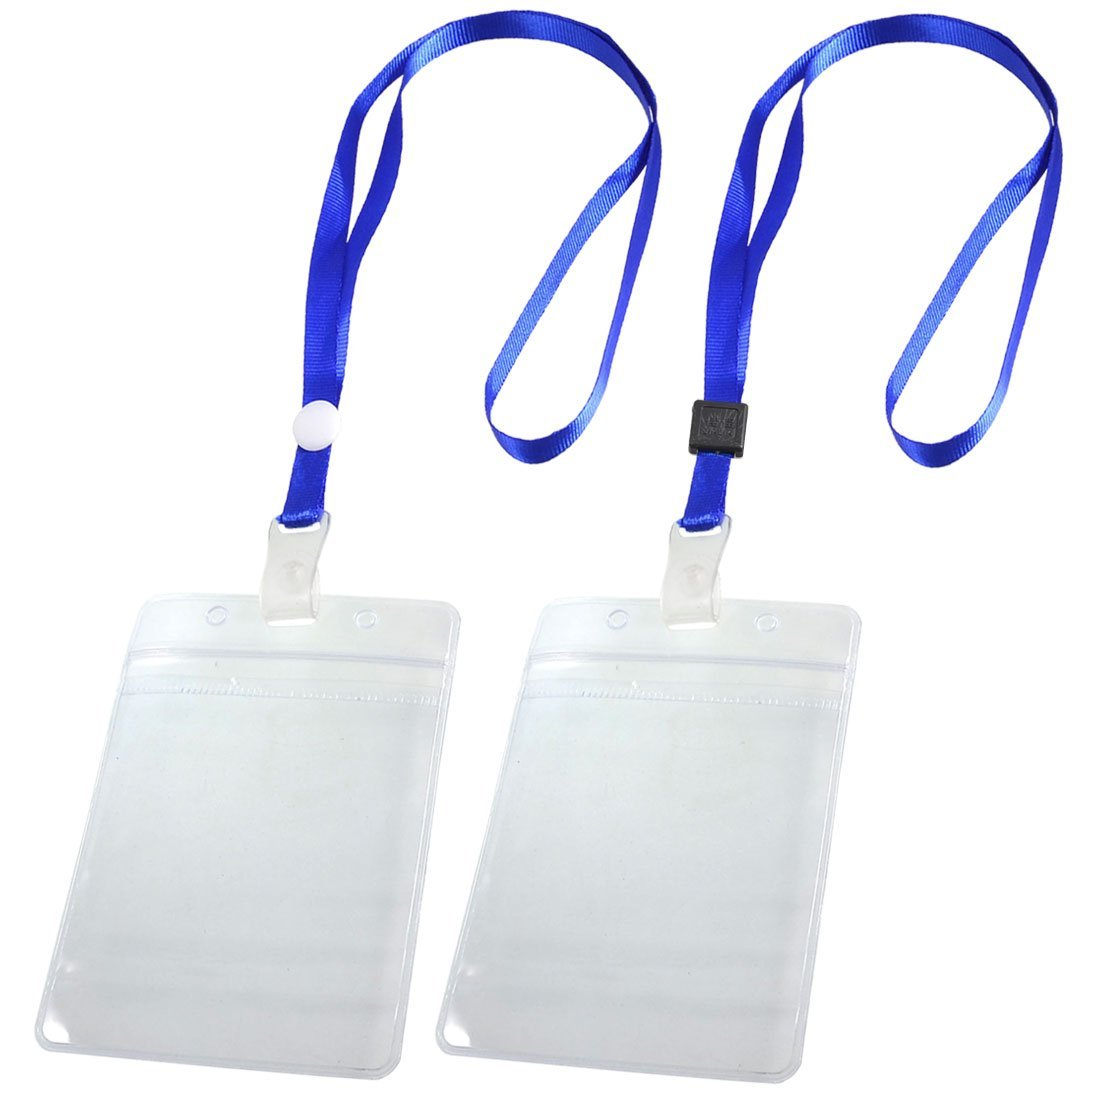 Details about 2 Pcs ID Card Badge Holder Adjustable Neck Strap Lanyard Blue  Clear AD fa55a124e